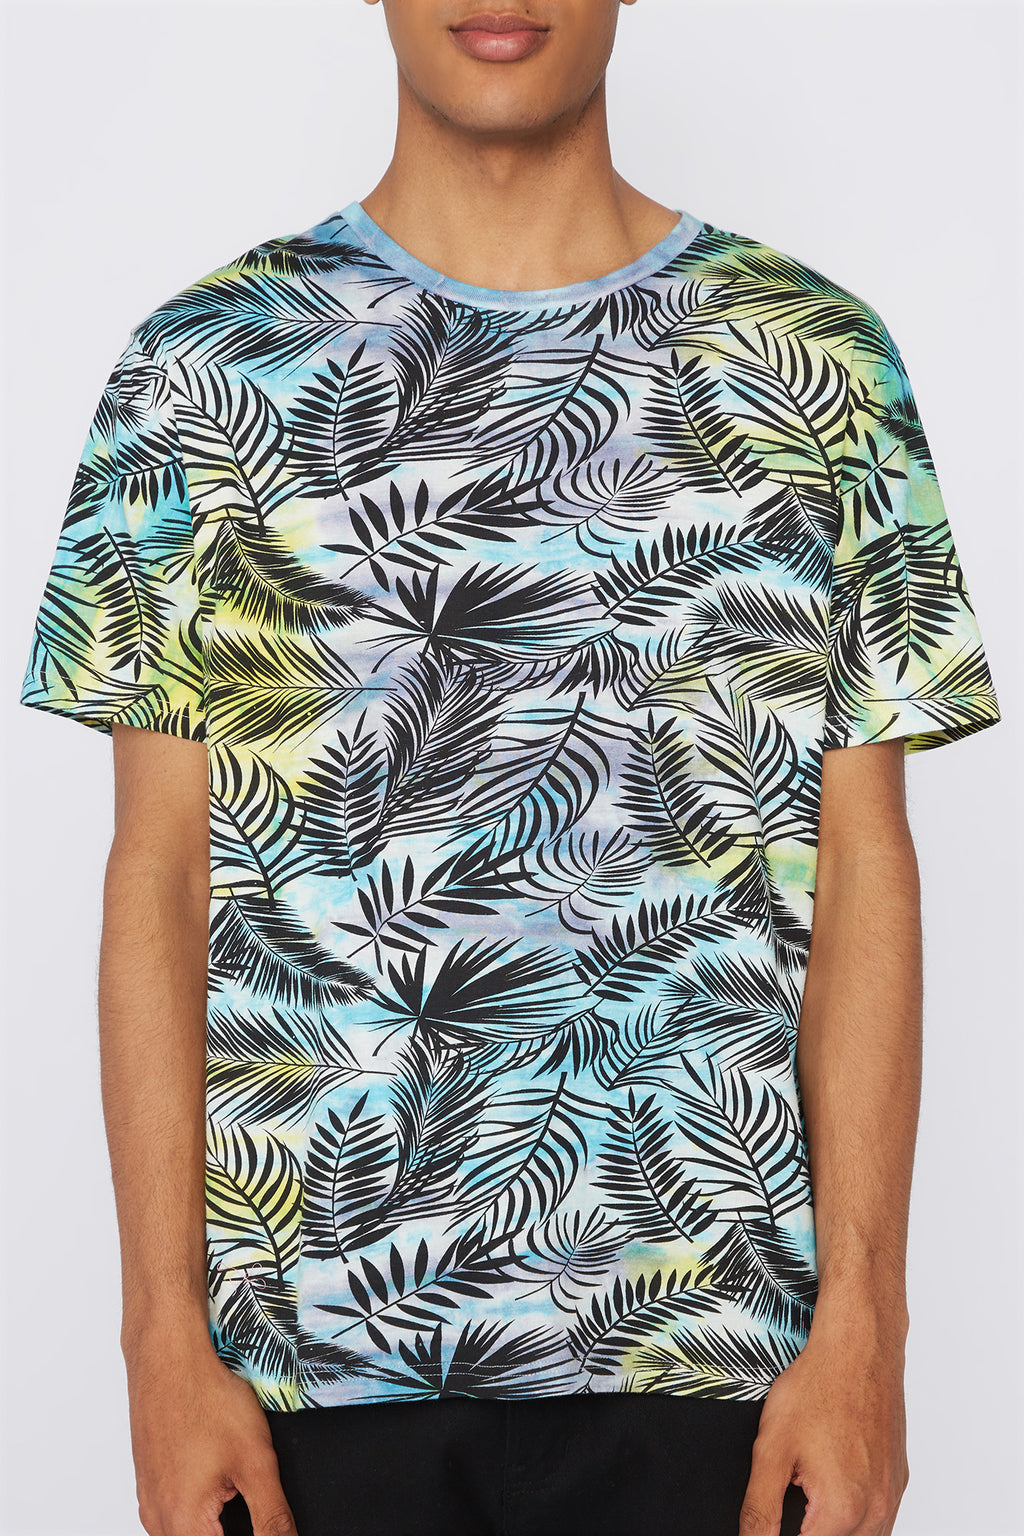 West49 Mens Tie-Dye Palm Tree T-Shirt